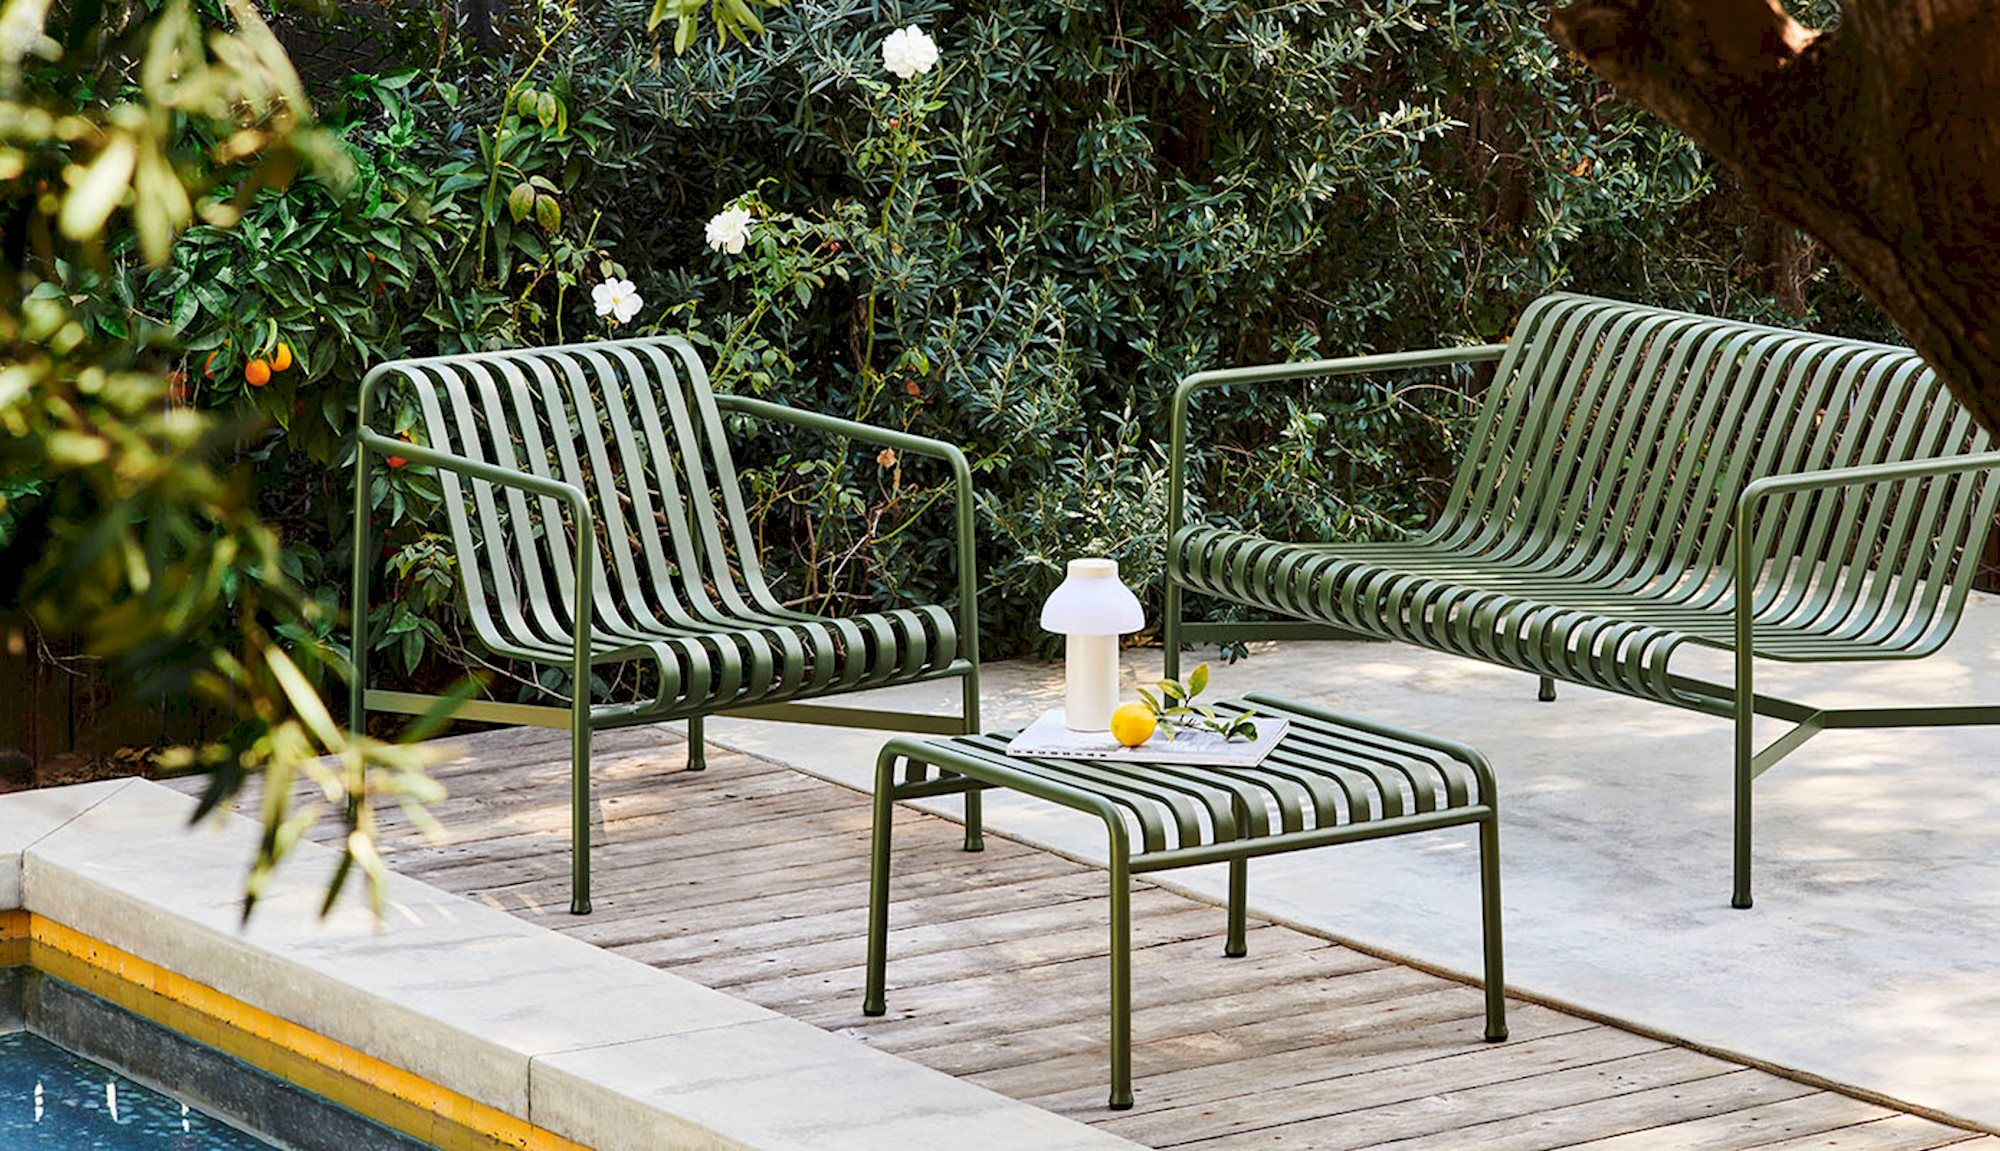 Hay Dk Latest Products Designer News And Retailer Info In 2020 Favorite Outdoor Furniture Outdoor Living Furniture Lounge Chair Outdoor